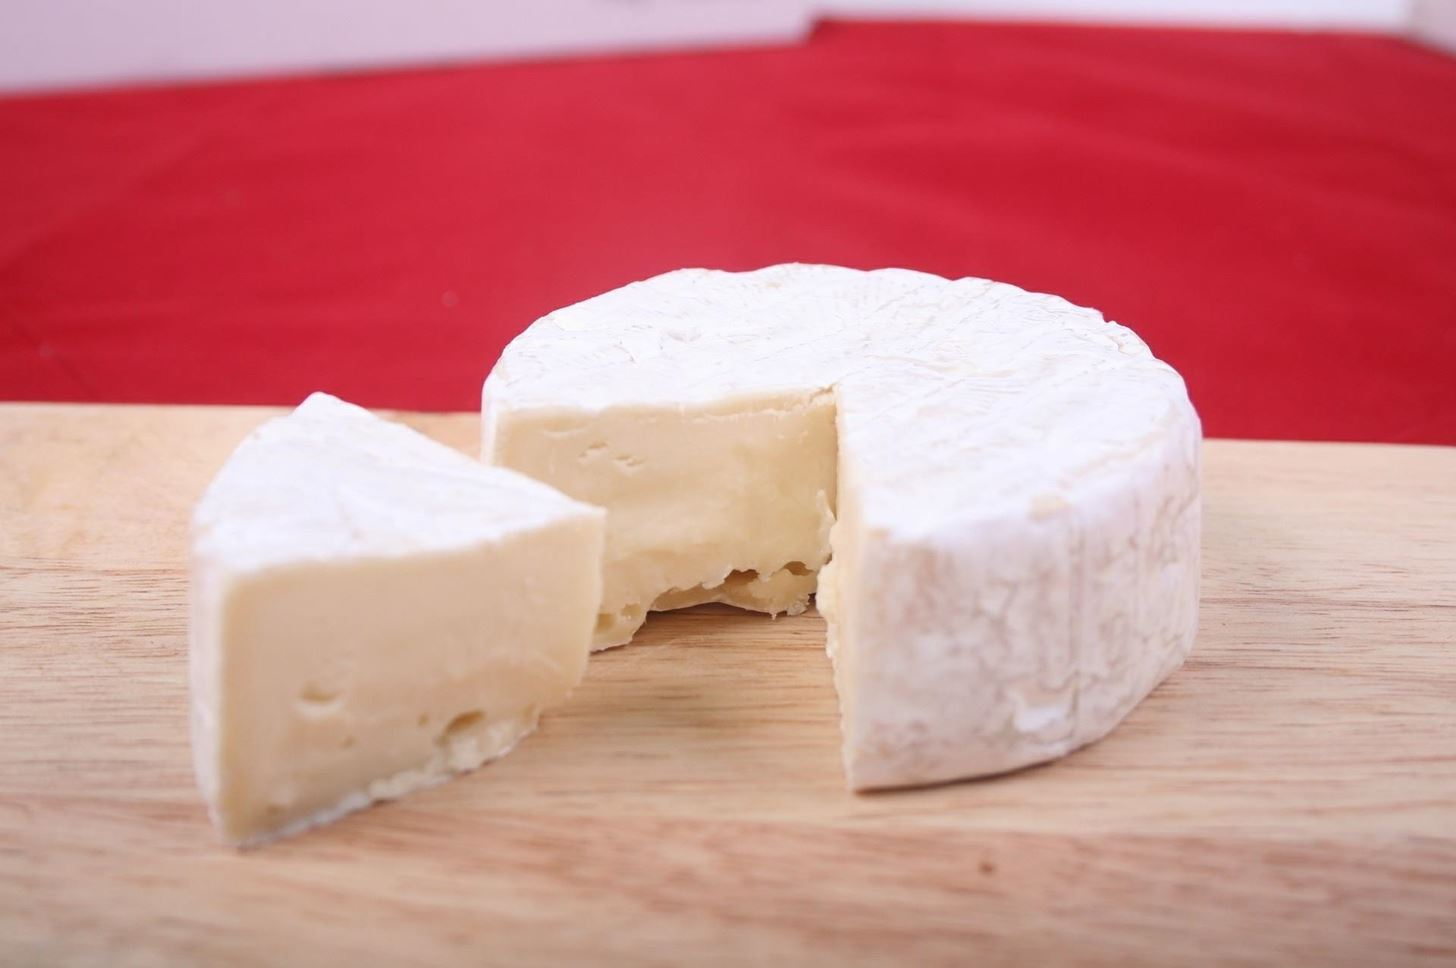 Tasty Testing: Artisanal Cheese Reveals Microbial Secrets of Deliciousness